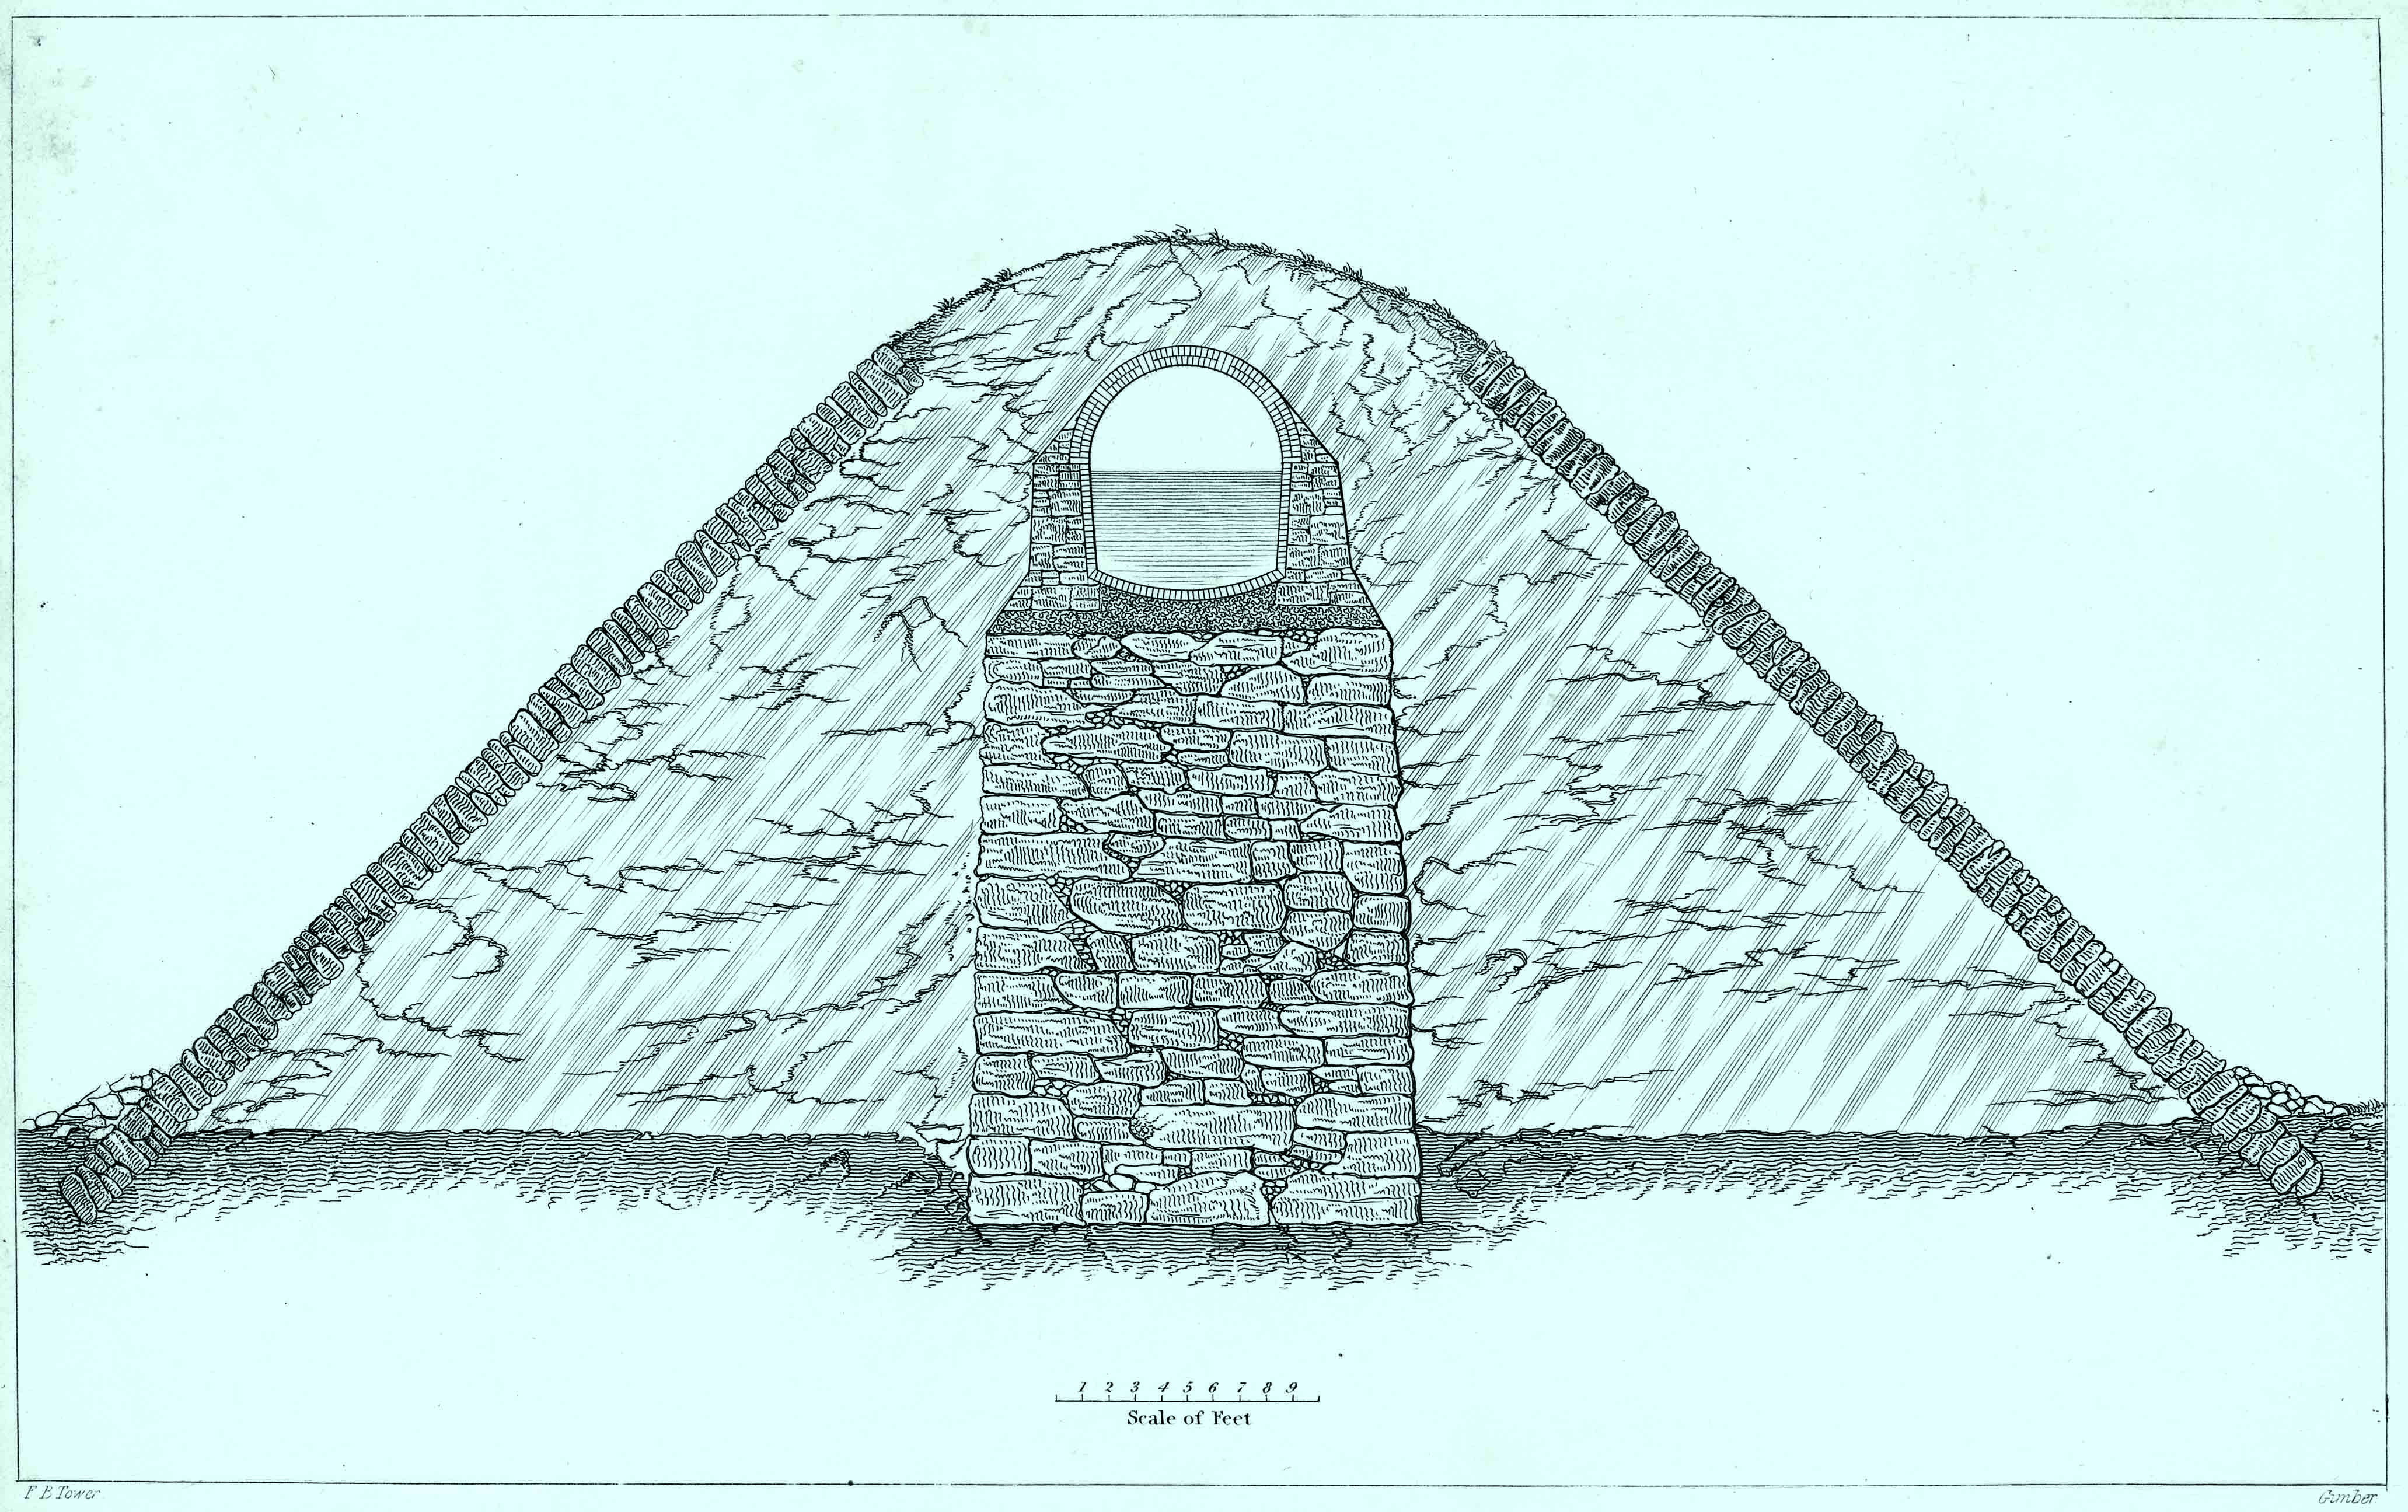 Typical cross-section of the Old Croton Aqueduct.